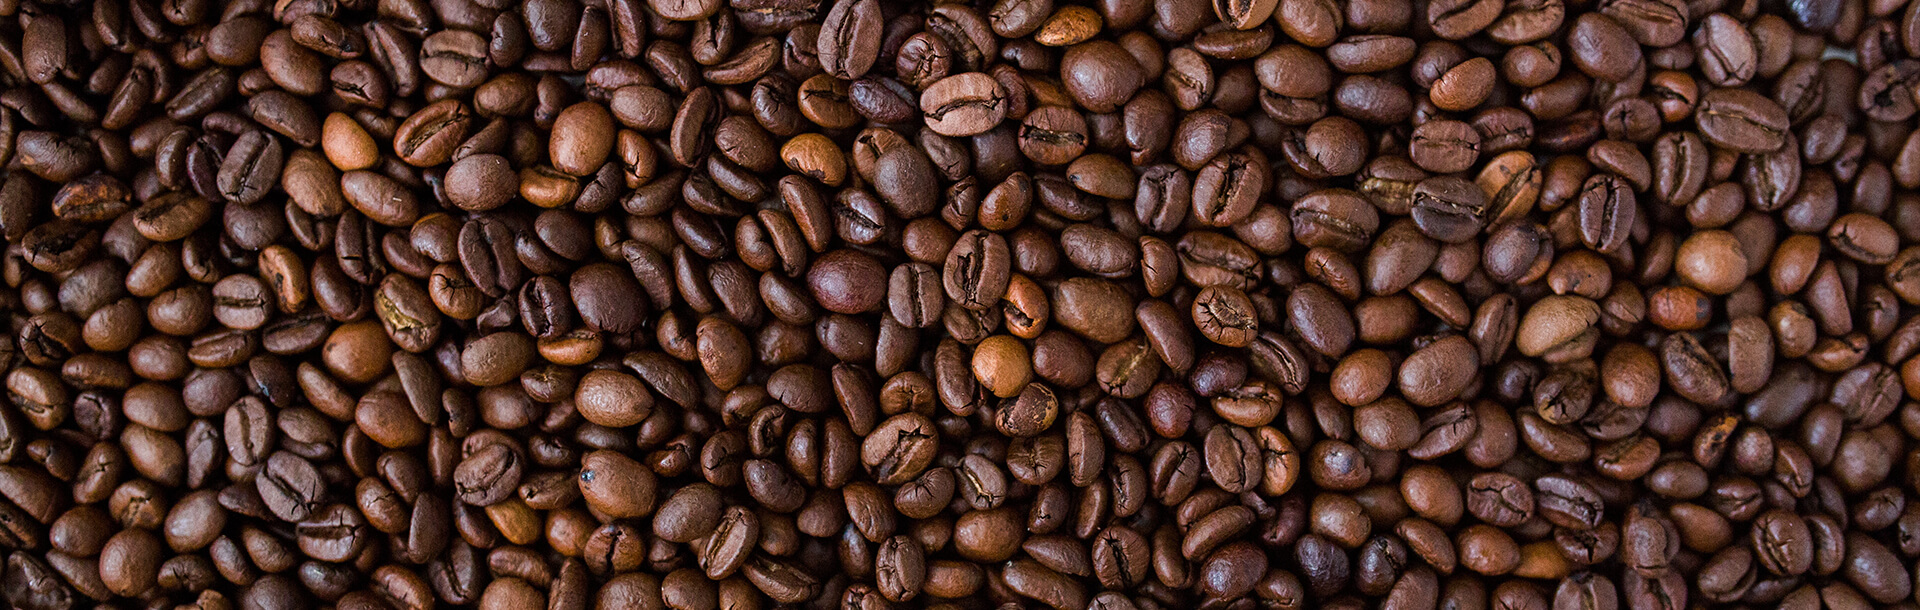 Professional photography of coffee beans